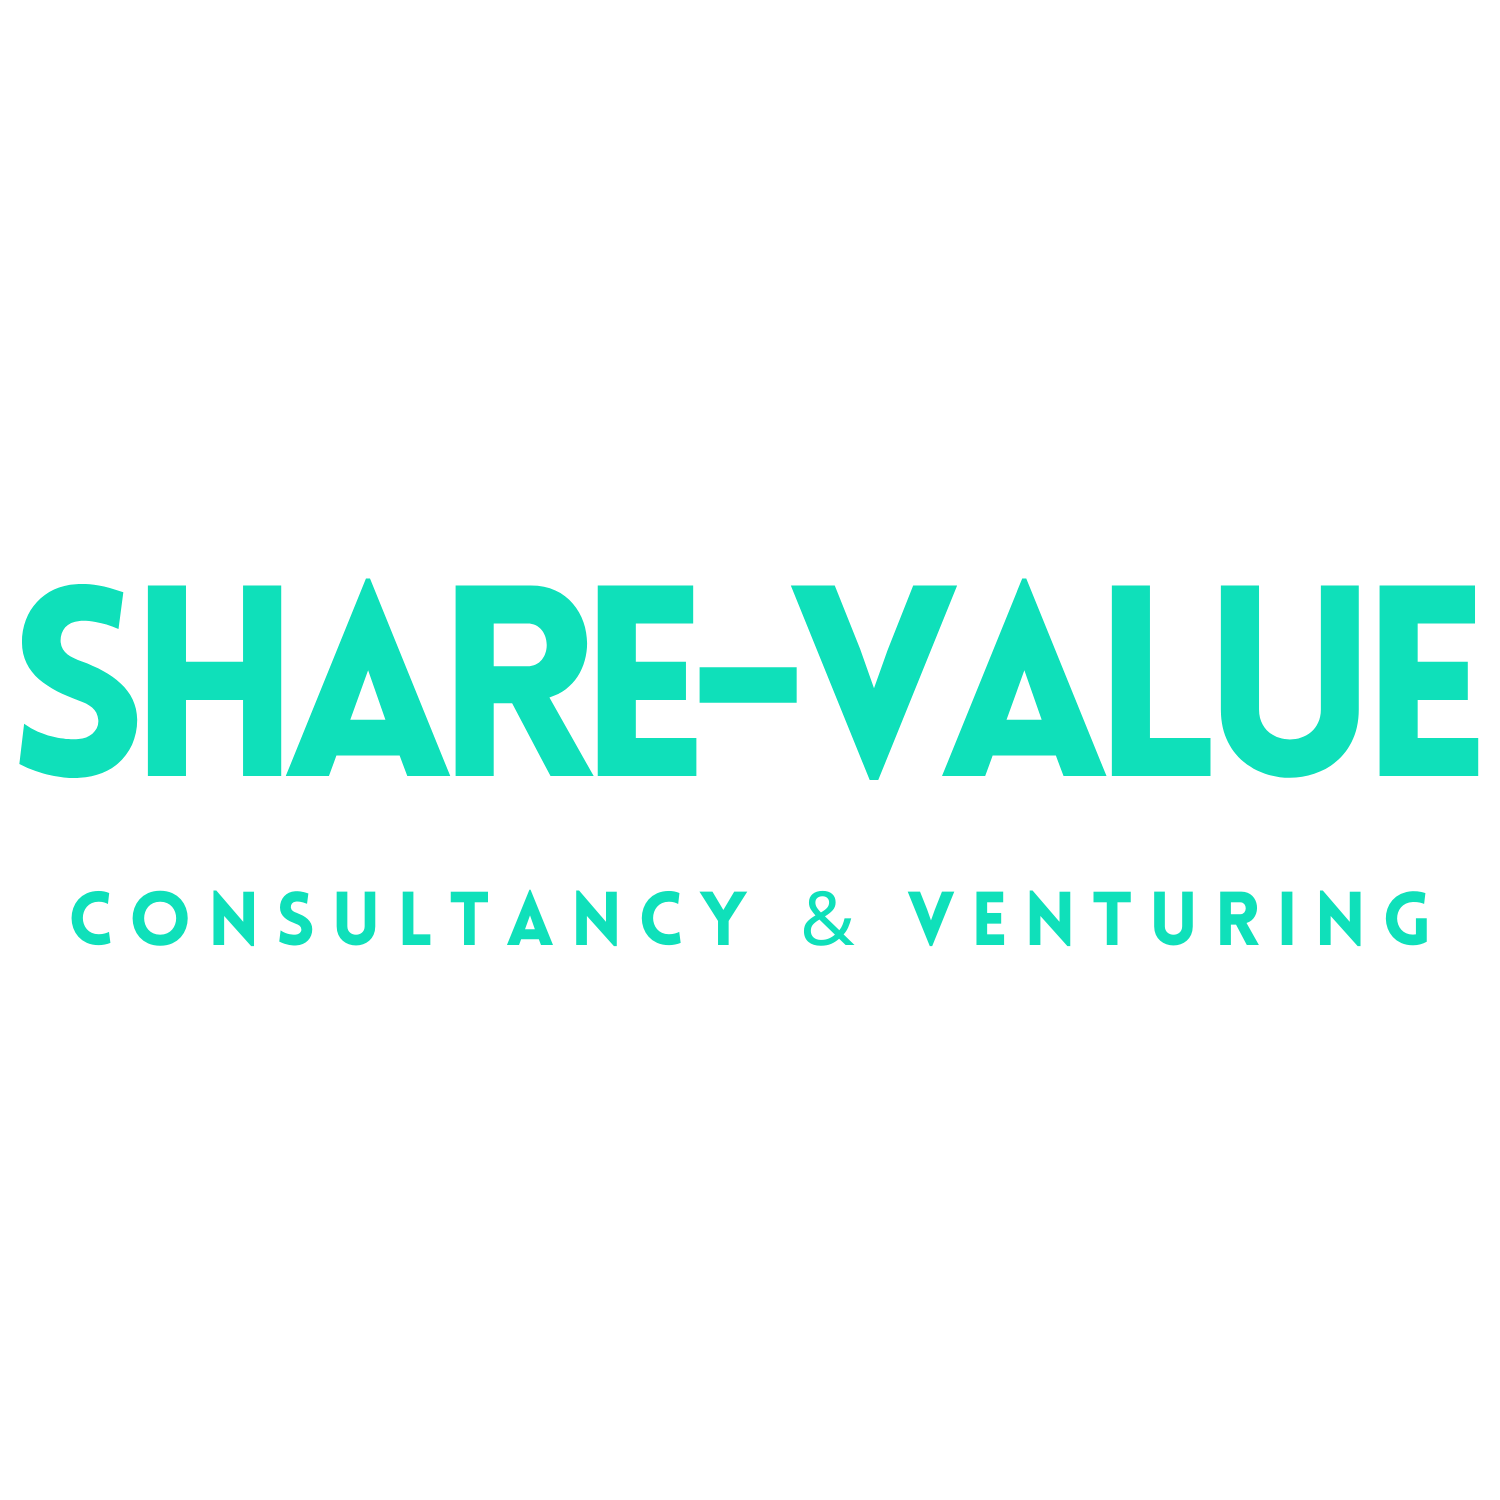 Share-Value